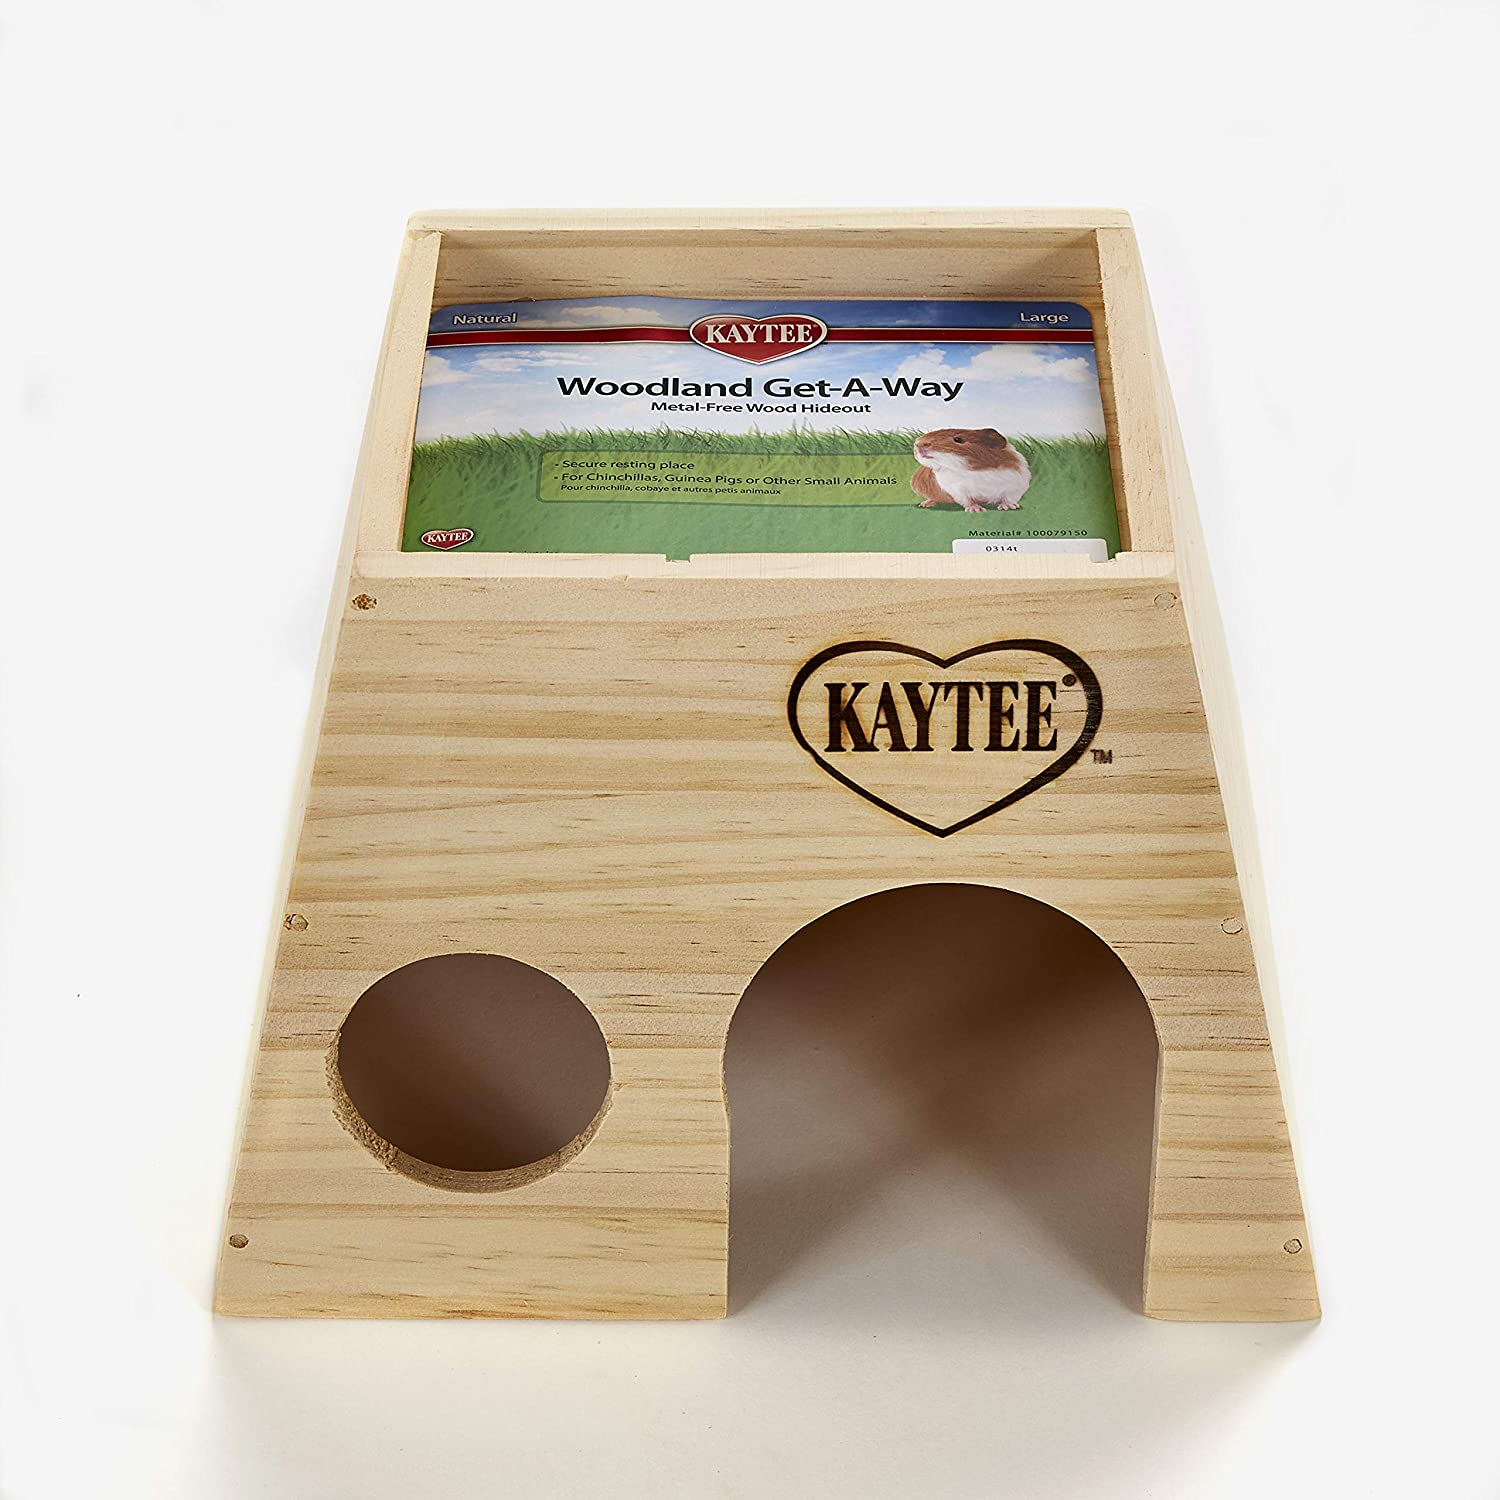 Kaytee Now free shipping Woodland Get-A-Way Store